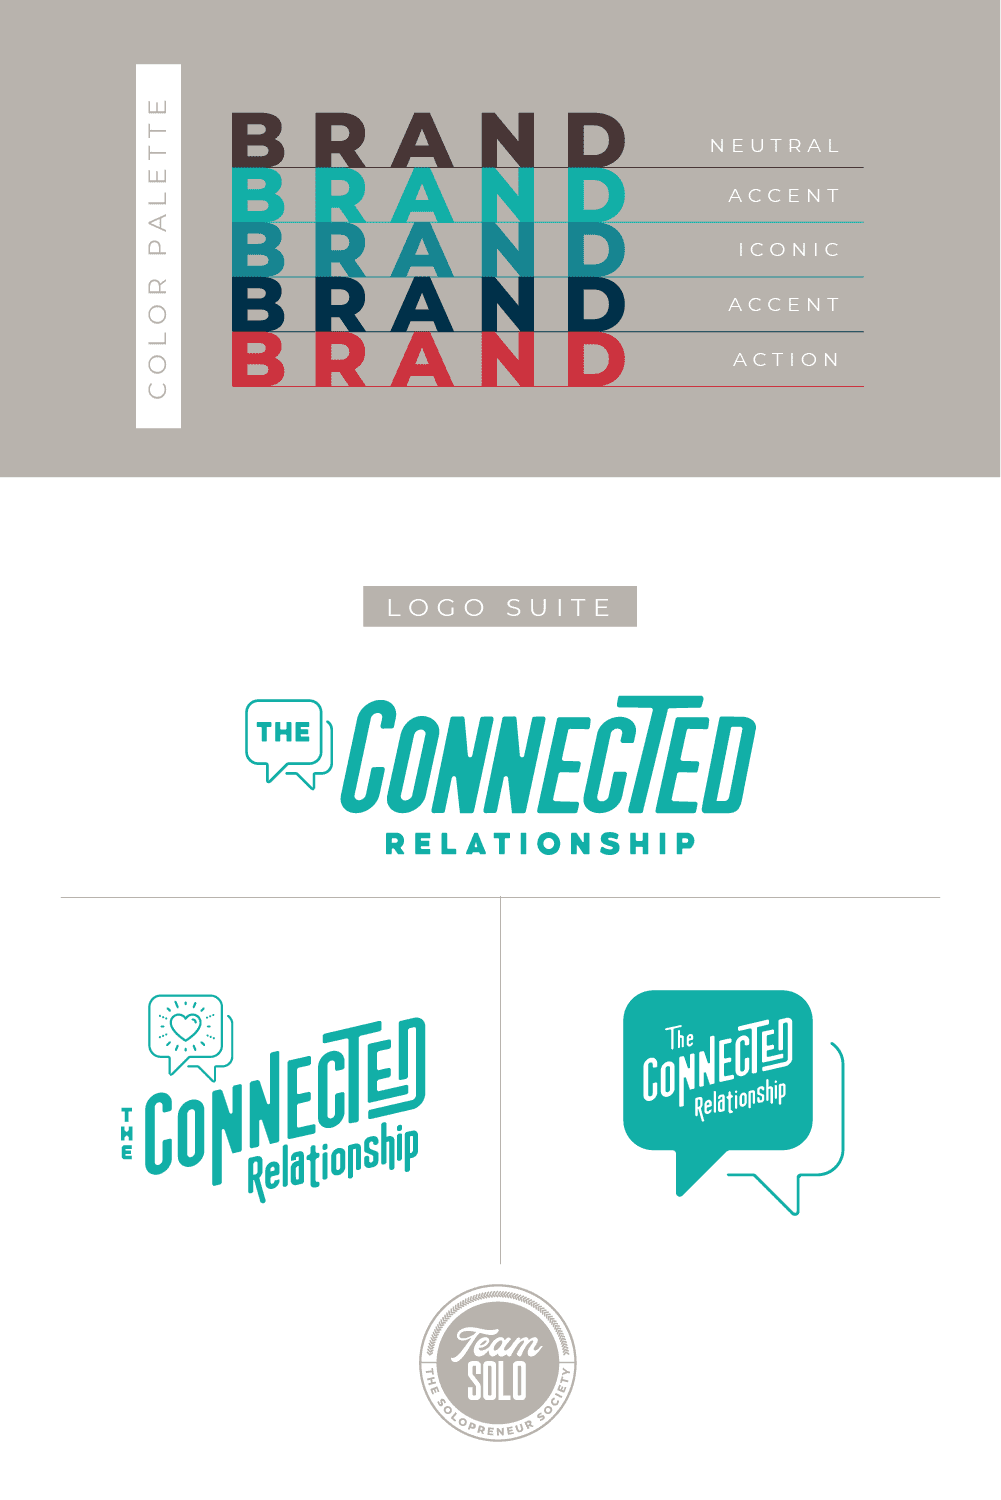 The Connected Relationship Brand Identity Design